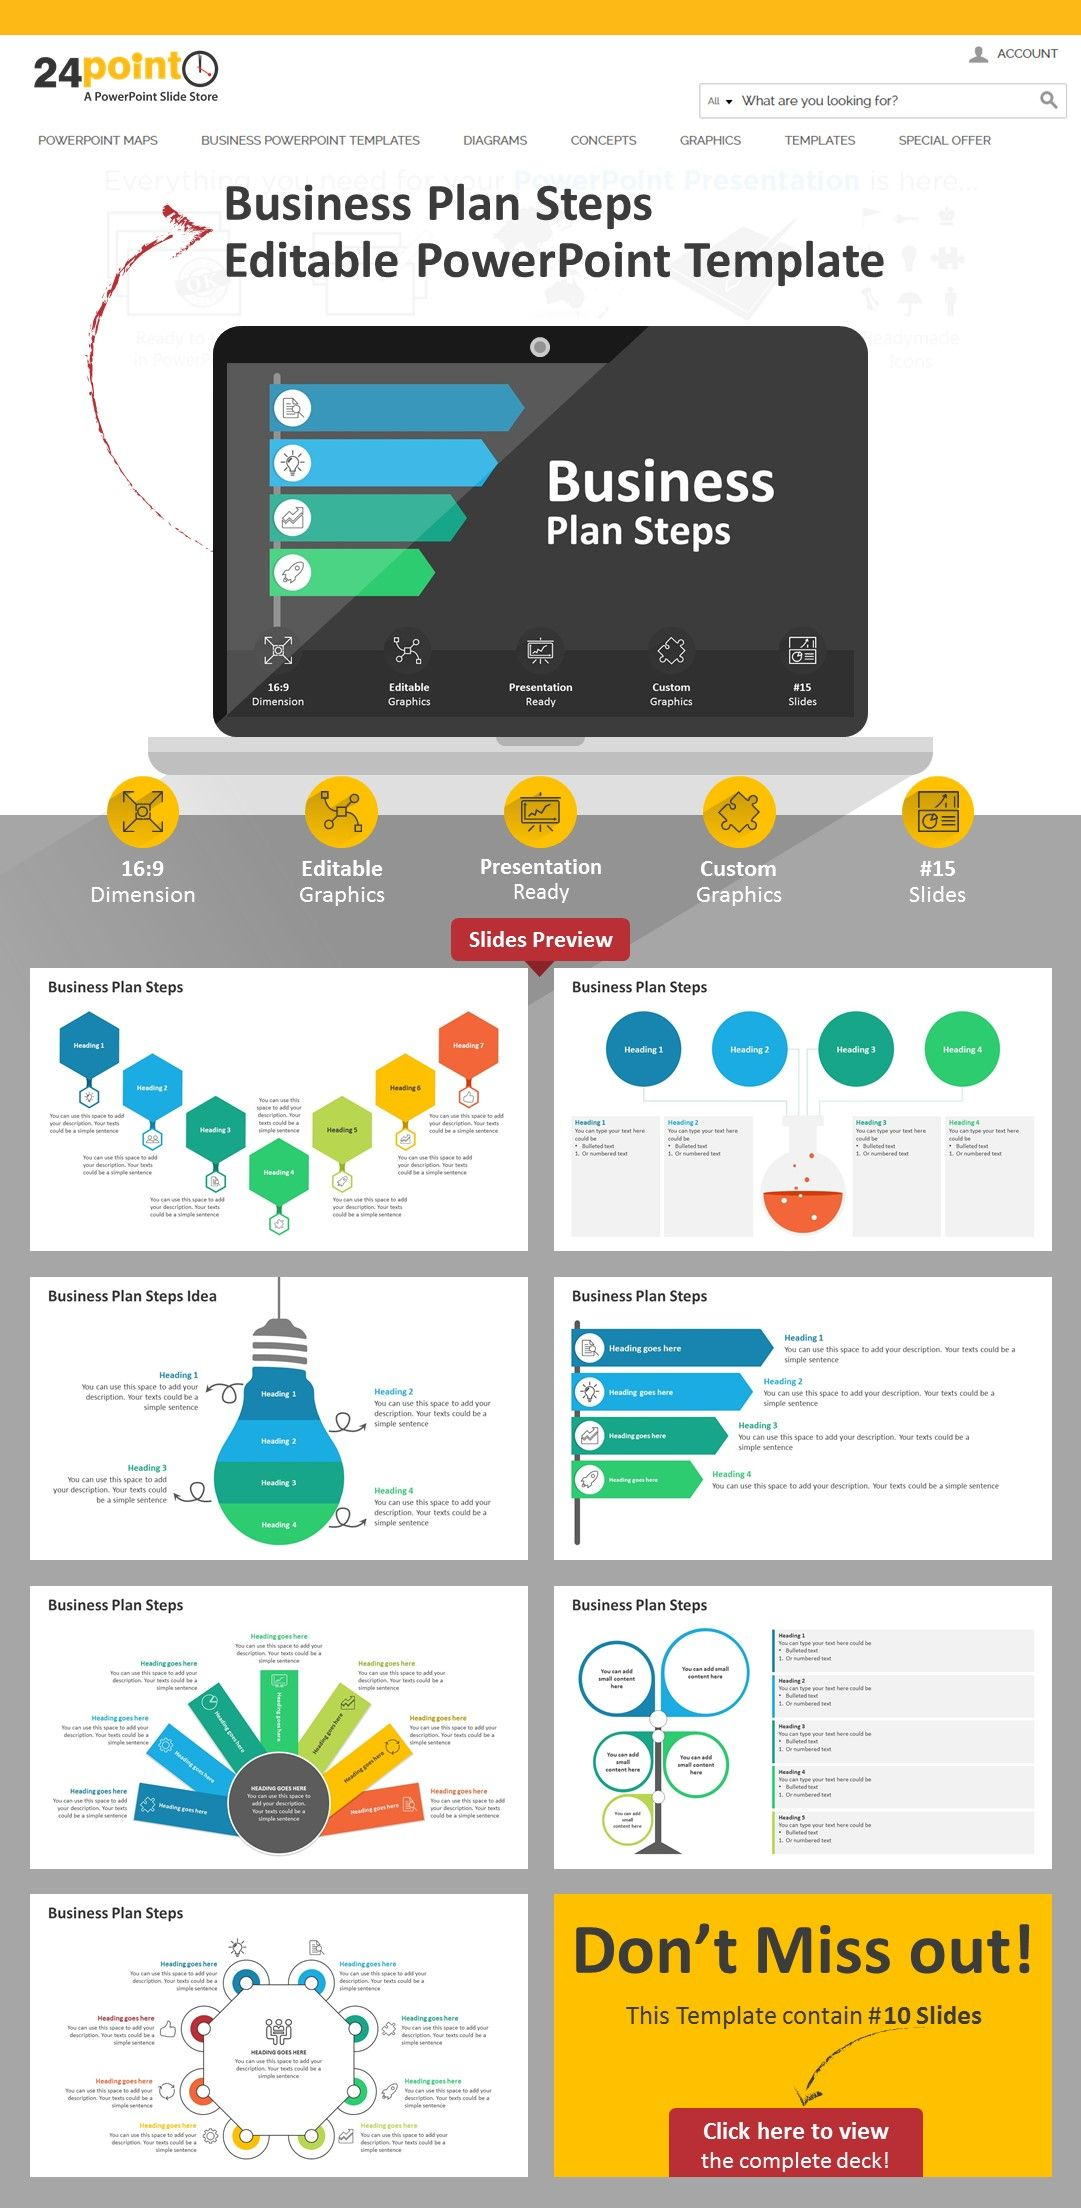 Business Plan Steps PowerPoint Graphics Workflow